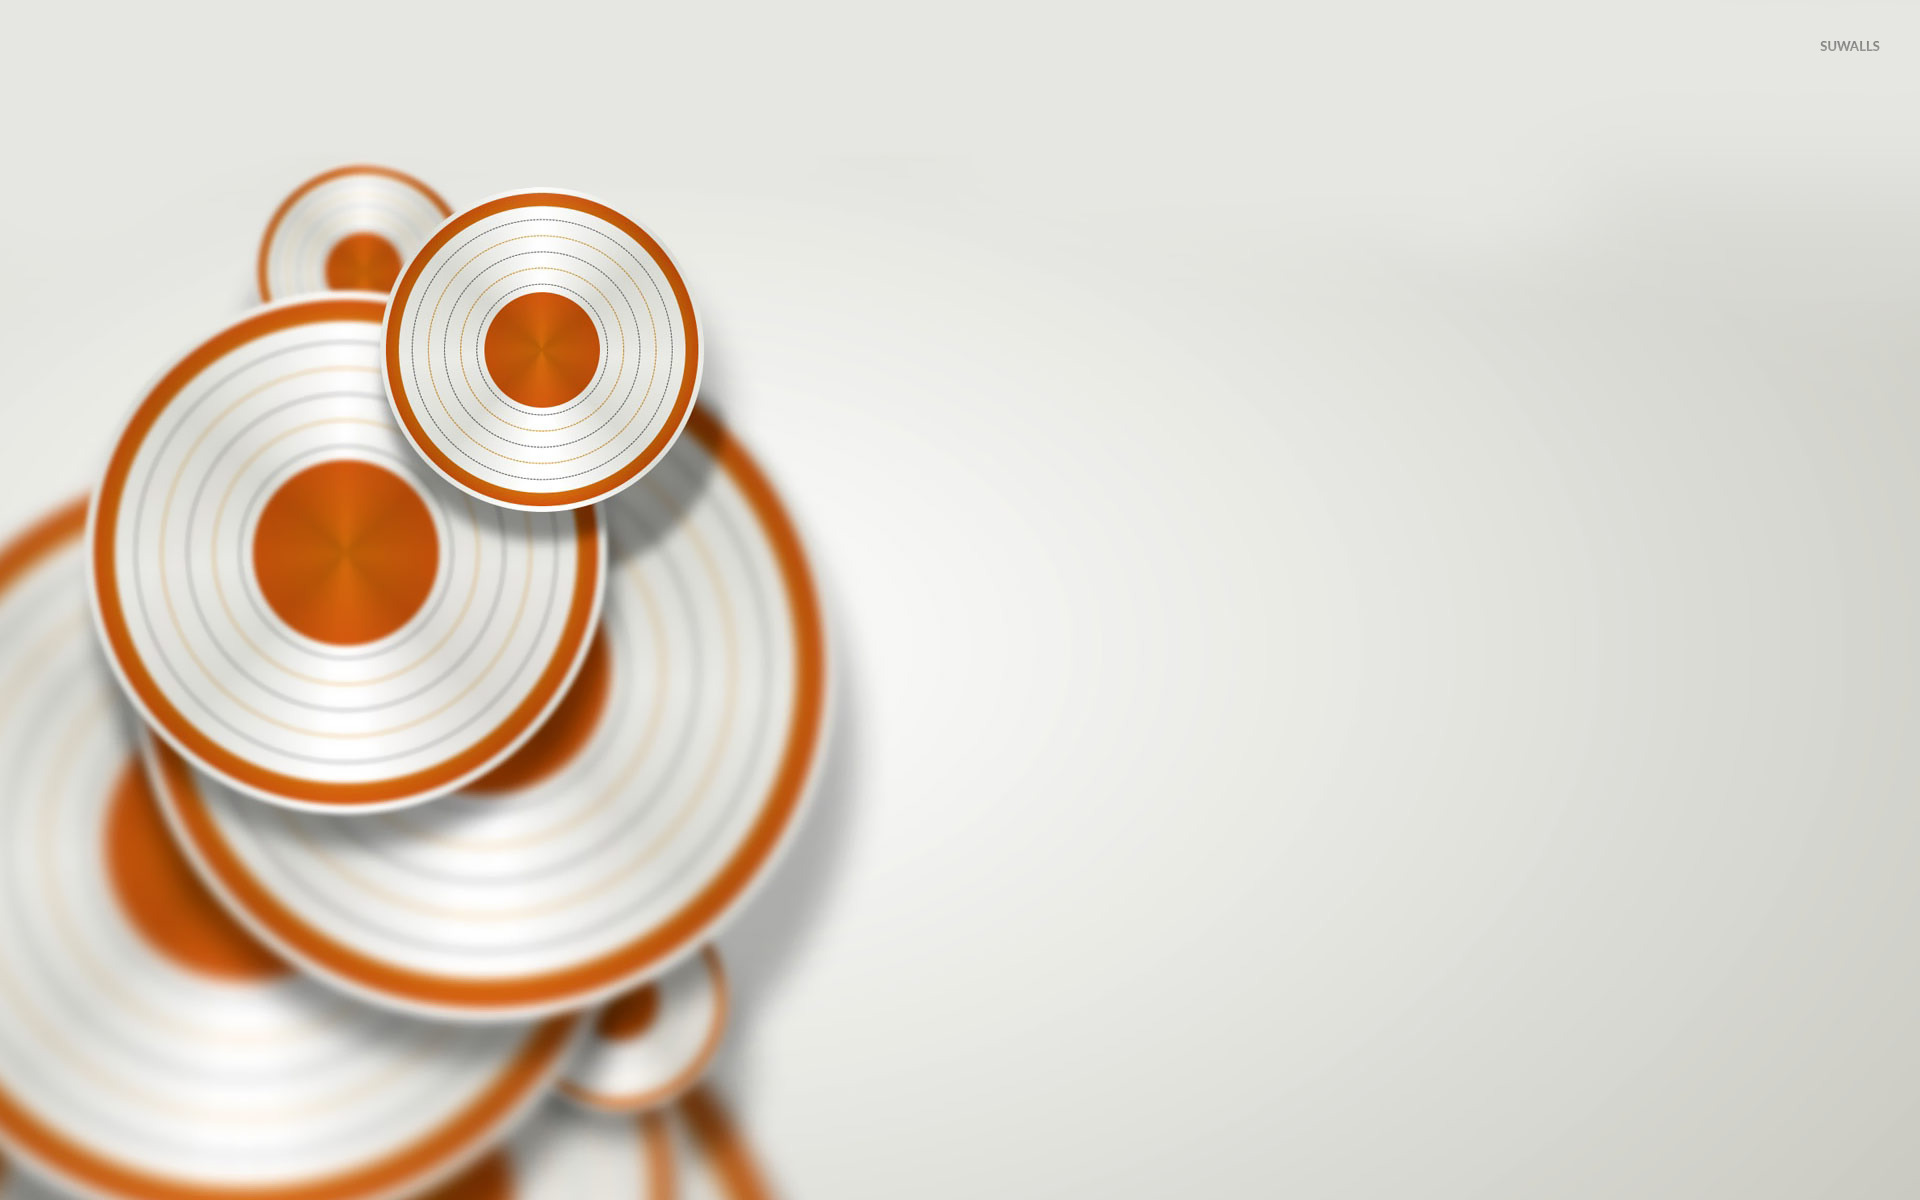 White Wave 3d Wallpaper White And Orange Discs Wallpaper 3d Wallpapers 19304